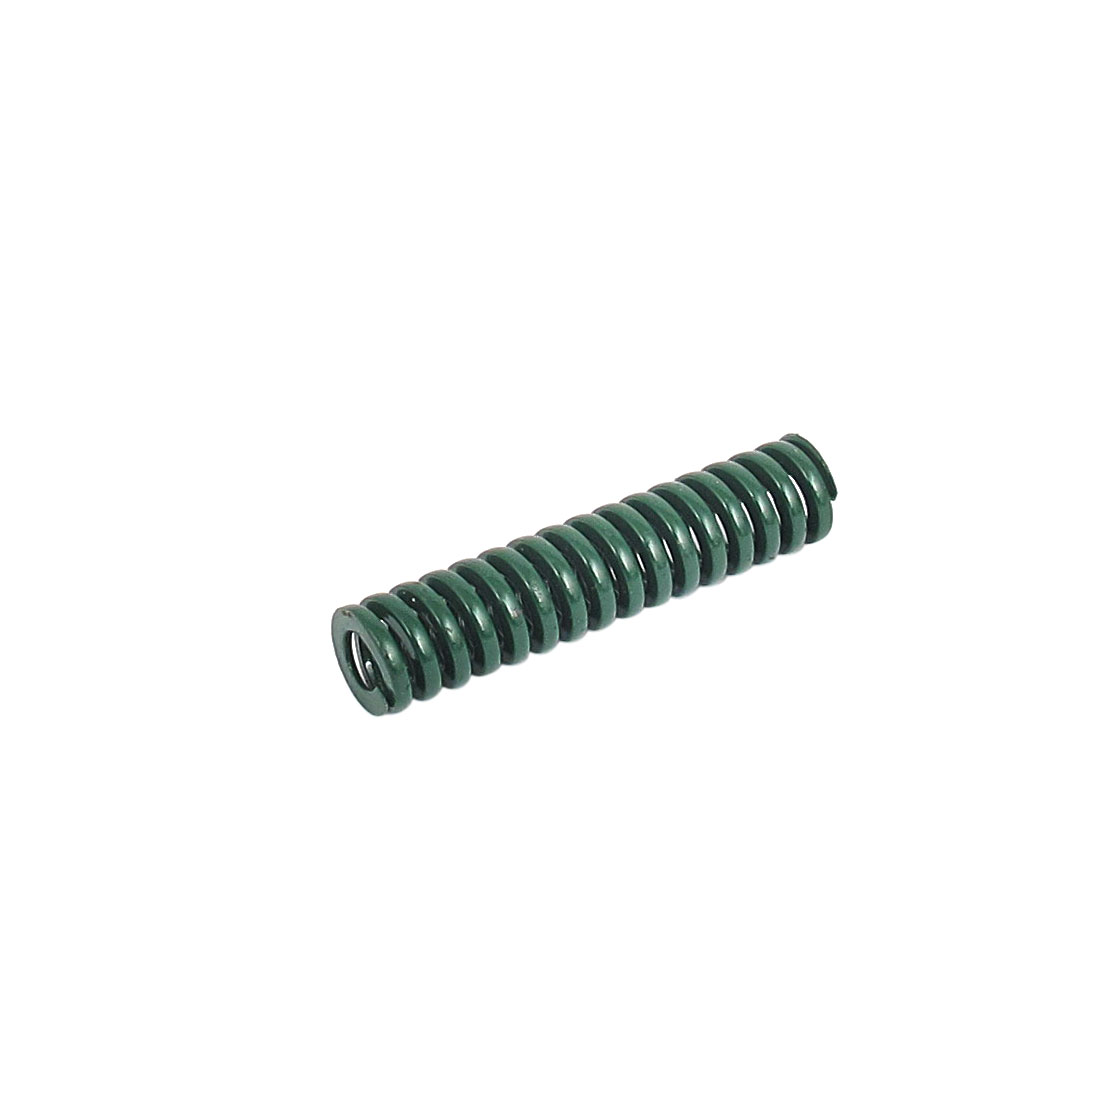 8mmx35mm Chromium Alloy Steel Heavy Load Die Spring Green